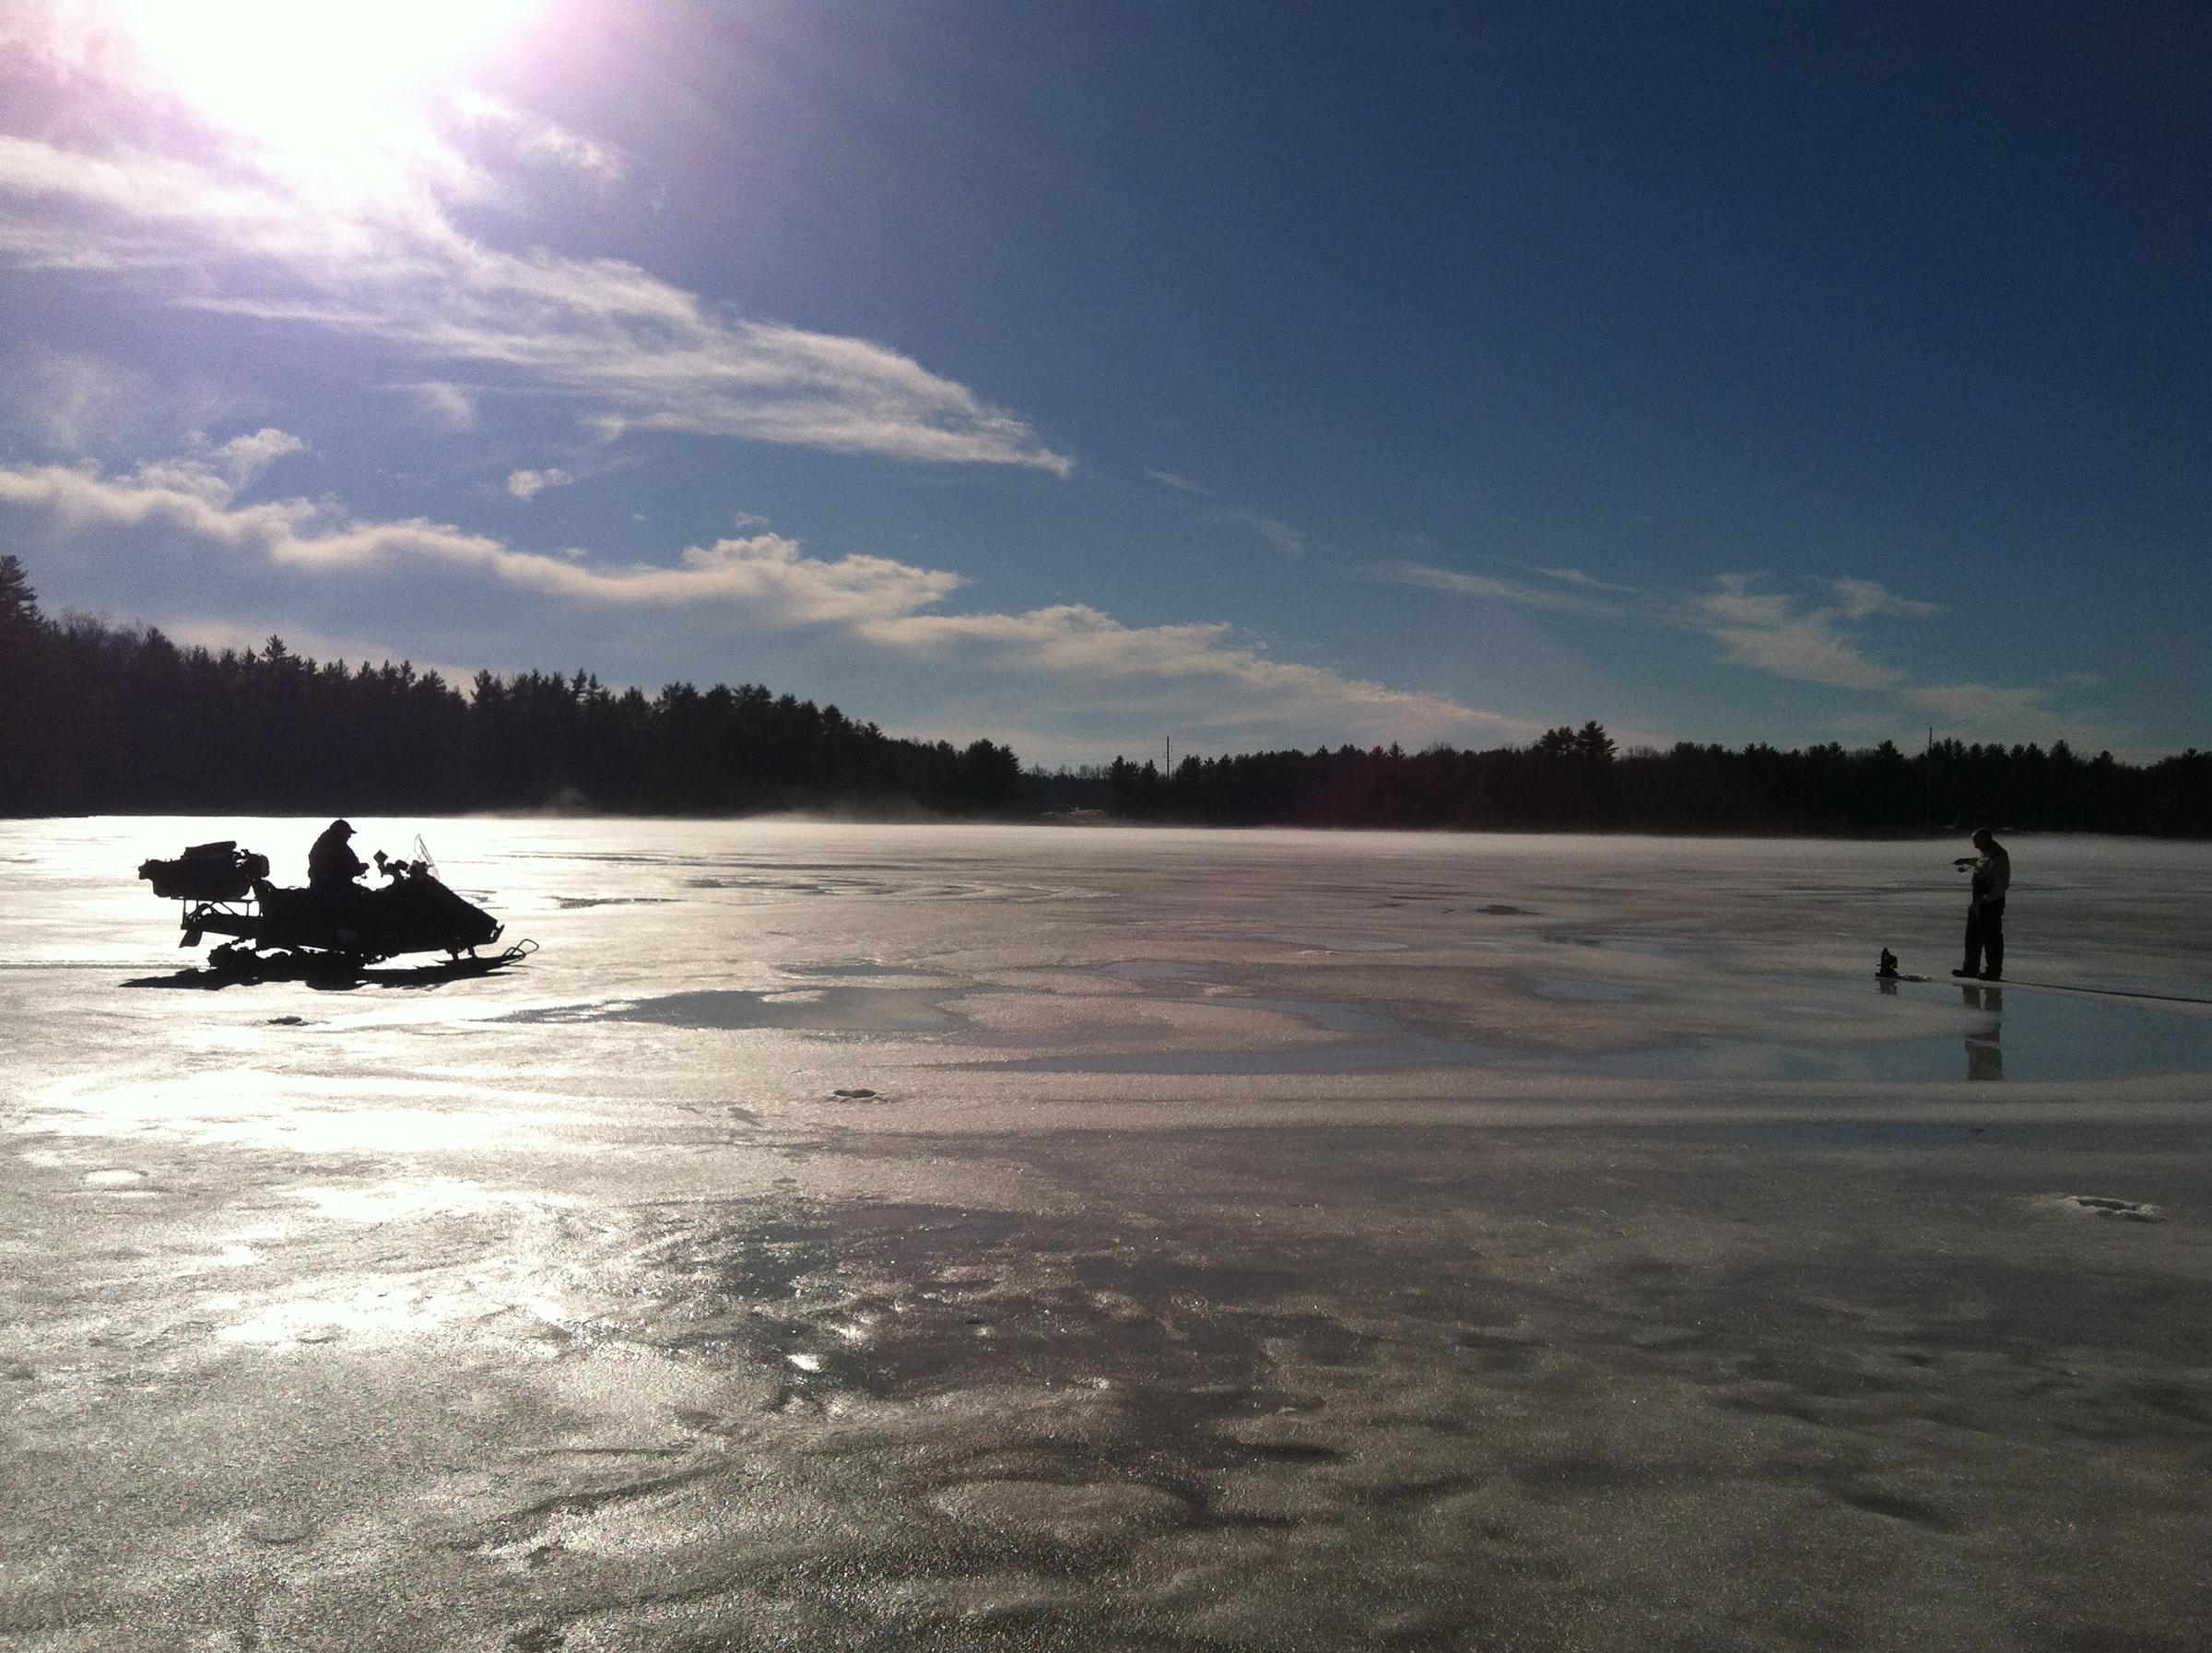 Innovation comes to ice fishing new hampshire public radio for Ice fishing nh